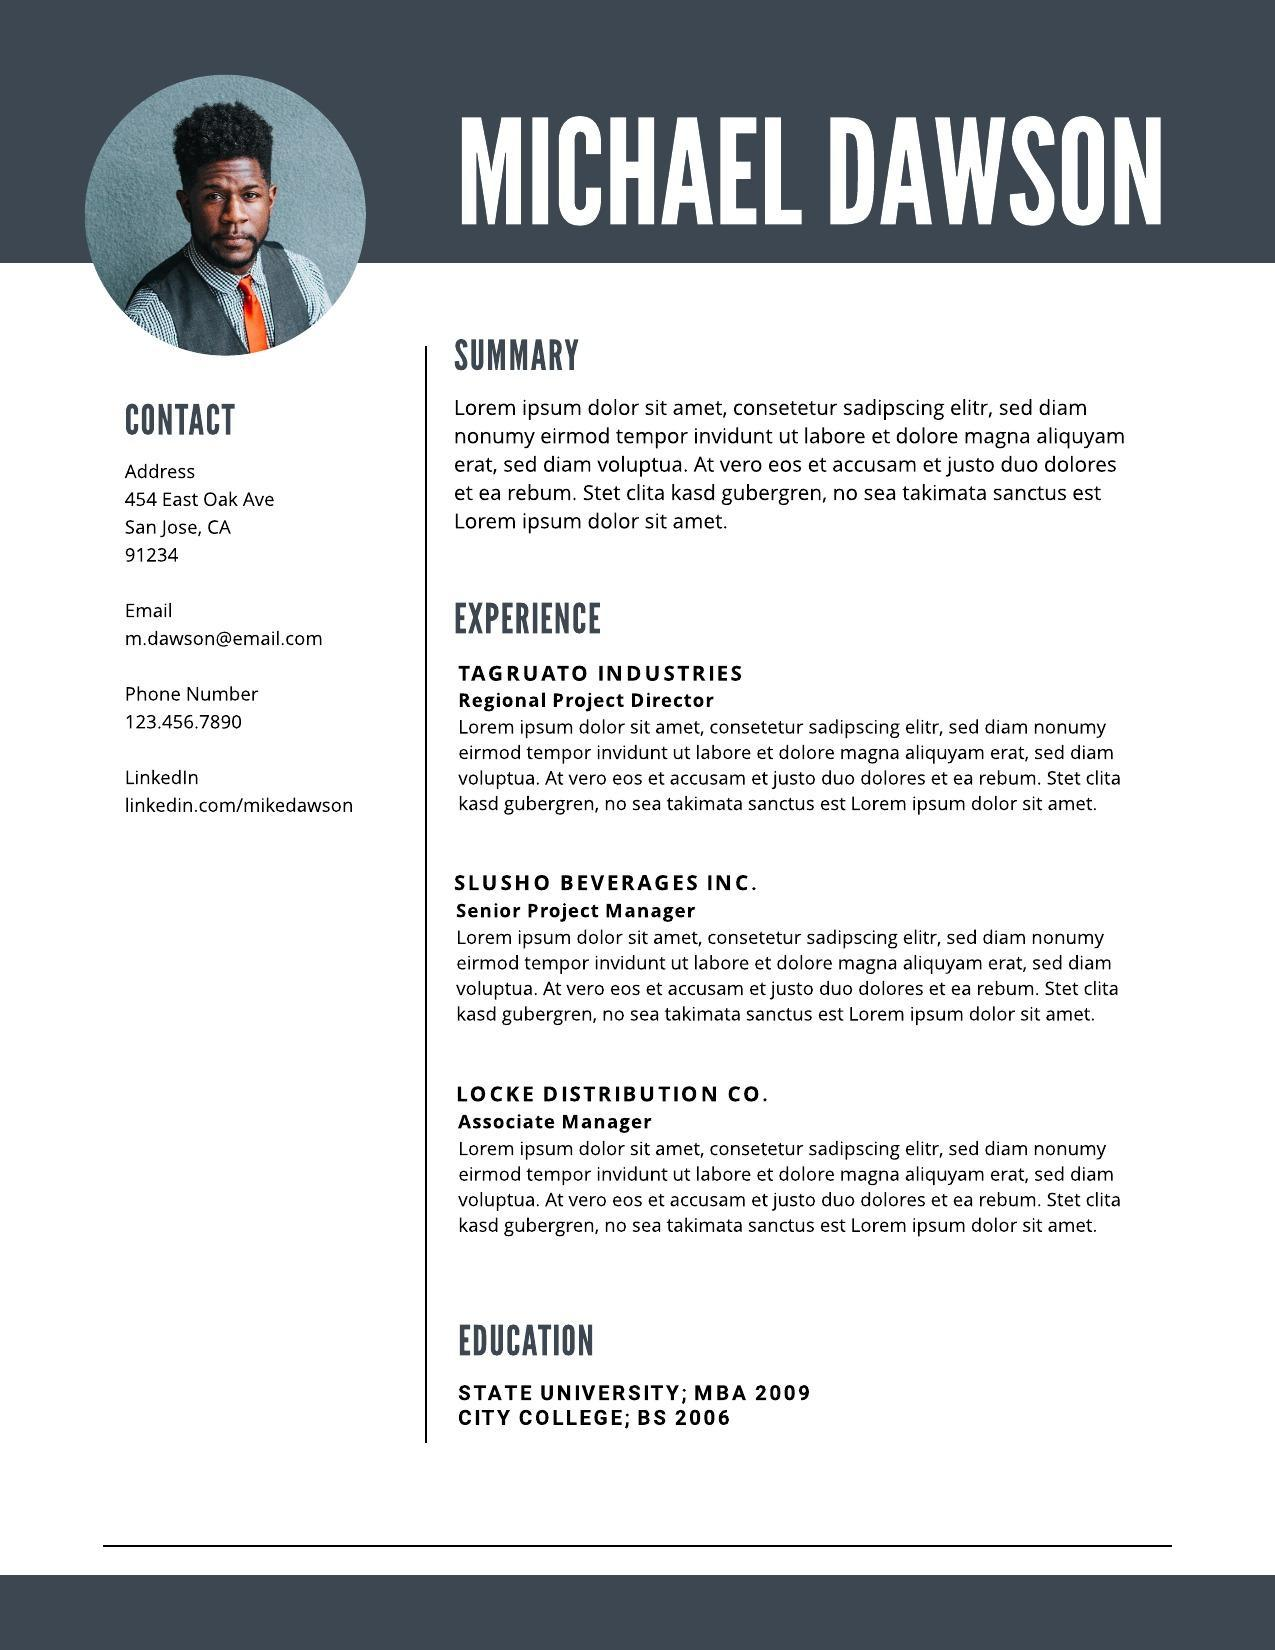 resume examples writing tips for lucidpress experience ideas image04 golf recruiting Resume Experience Ideas For Resume